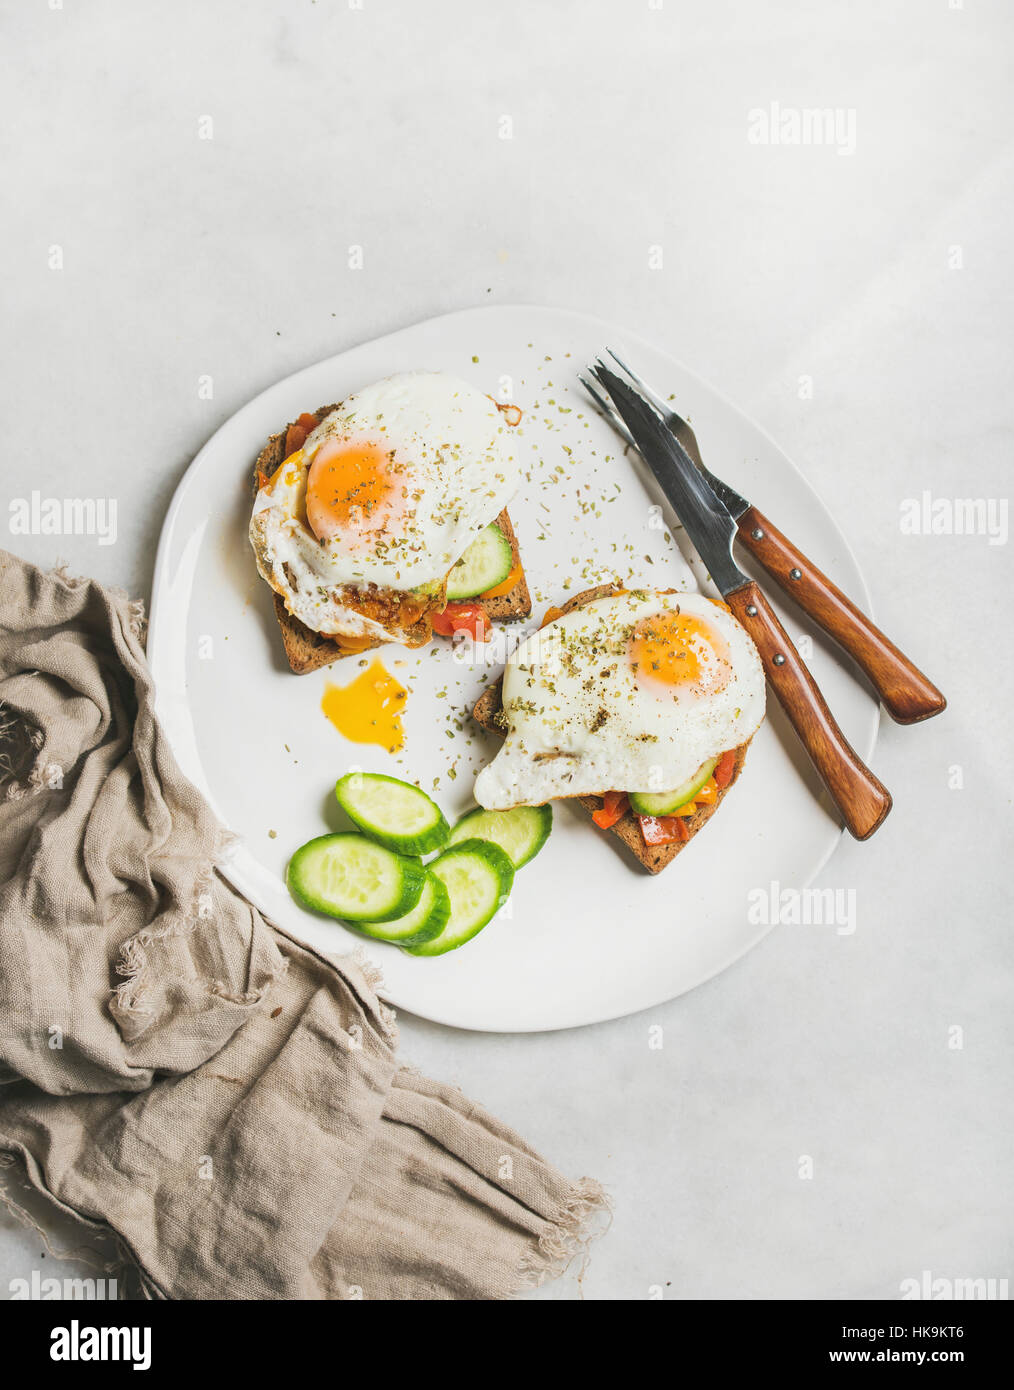 Breakfast toast with fried eggs with vegetables on white plate over grey marble background, top view. Healthy, clean - Stock Image